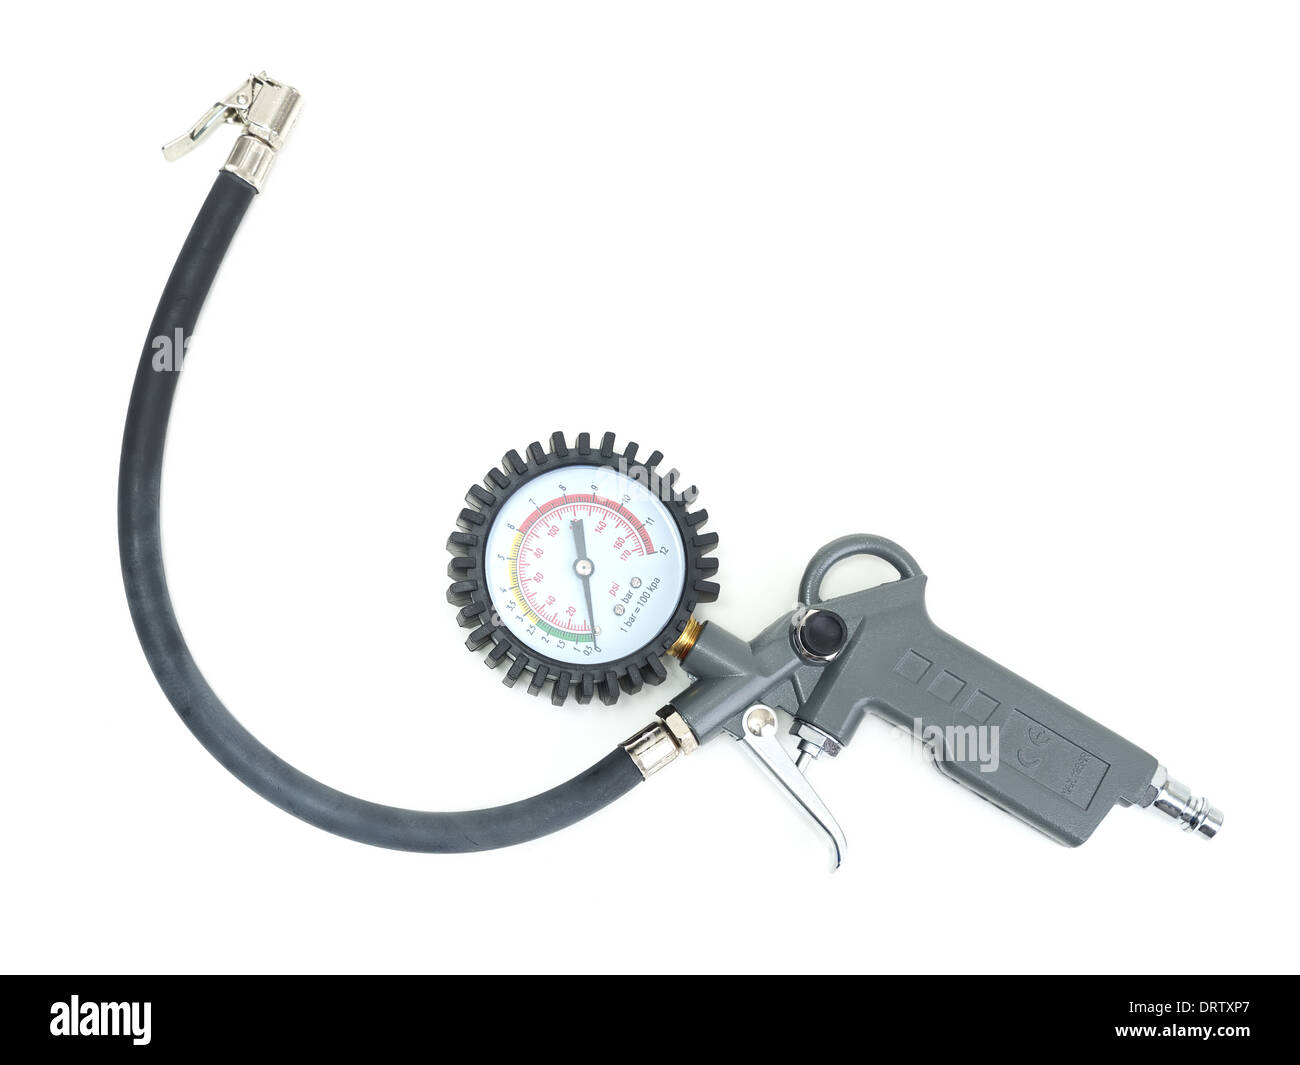 Tire inflator with gauge shot on white - Stock Image